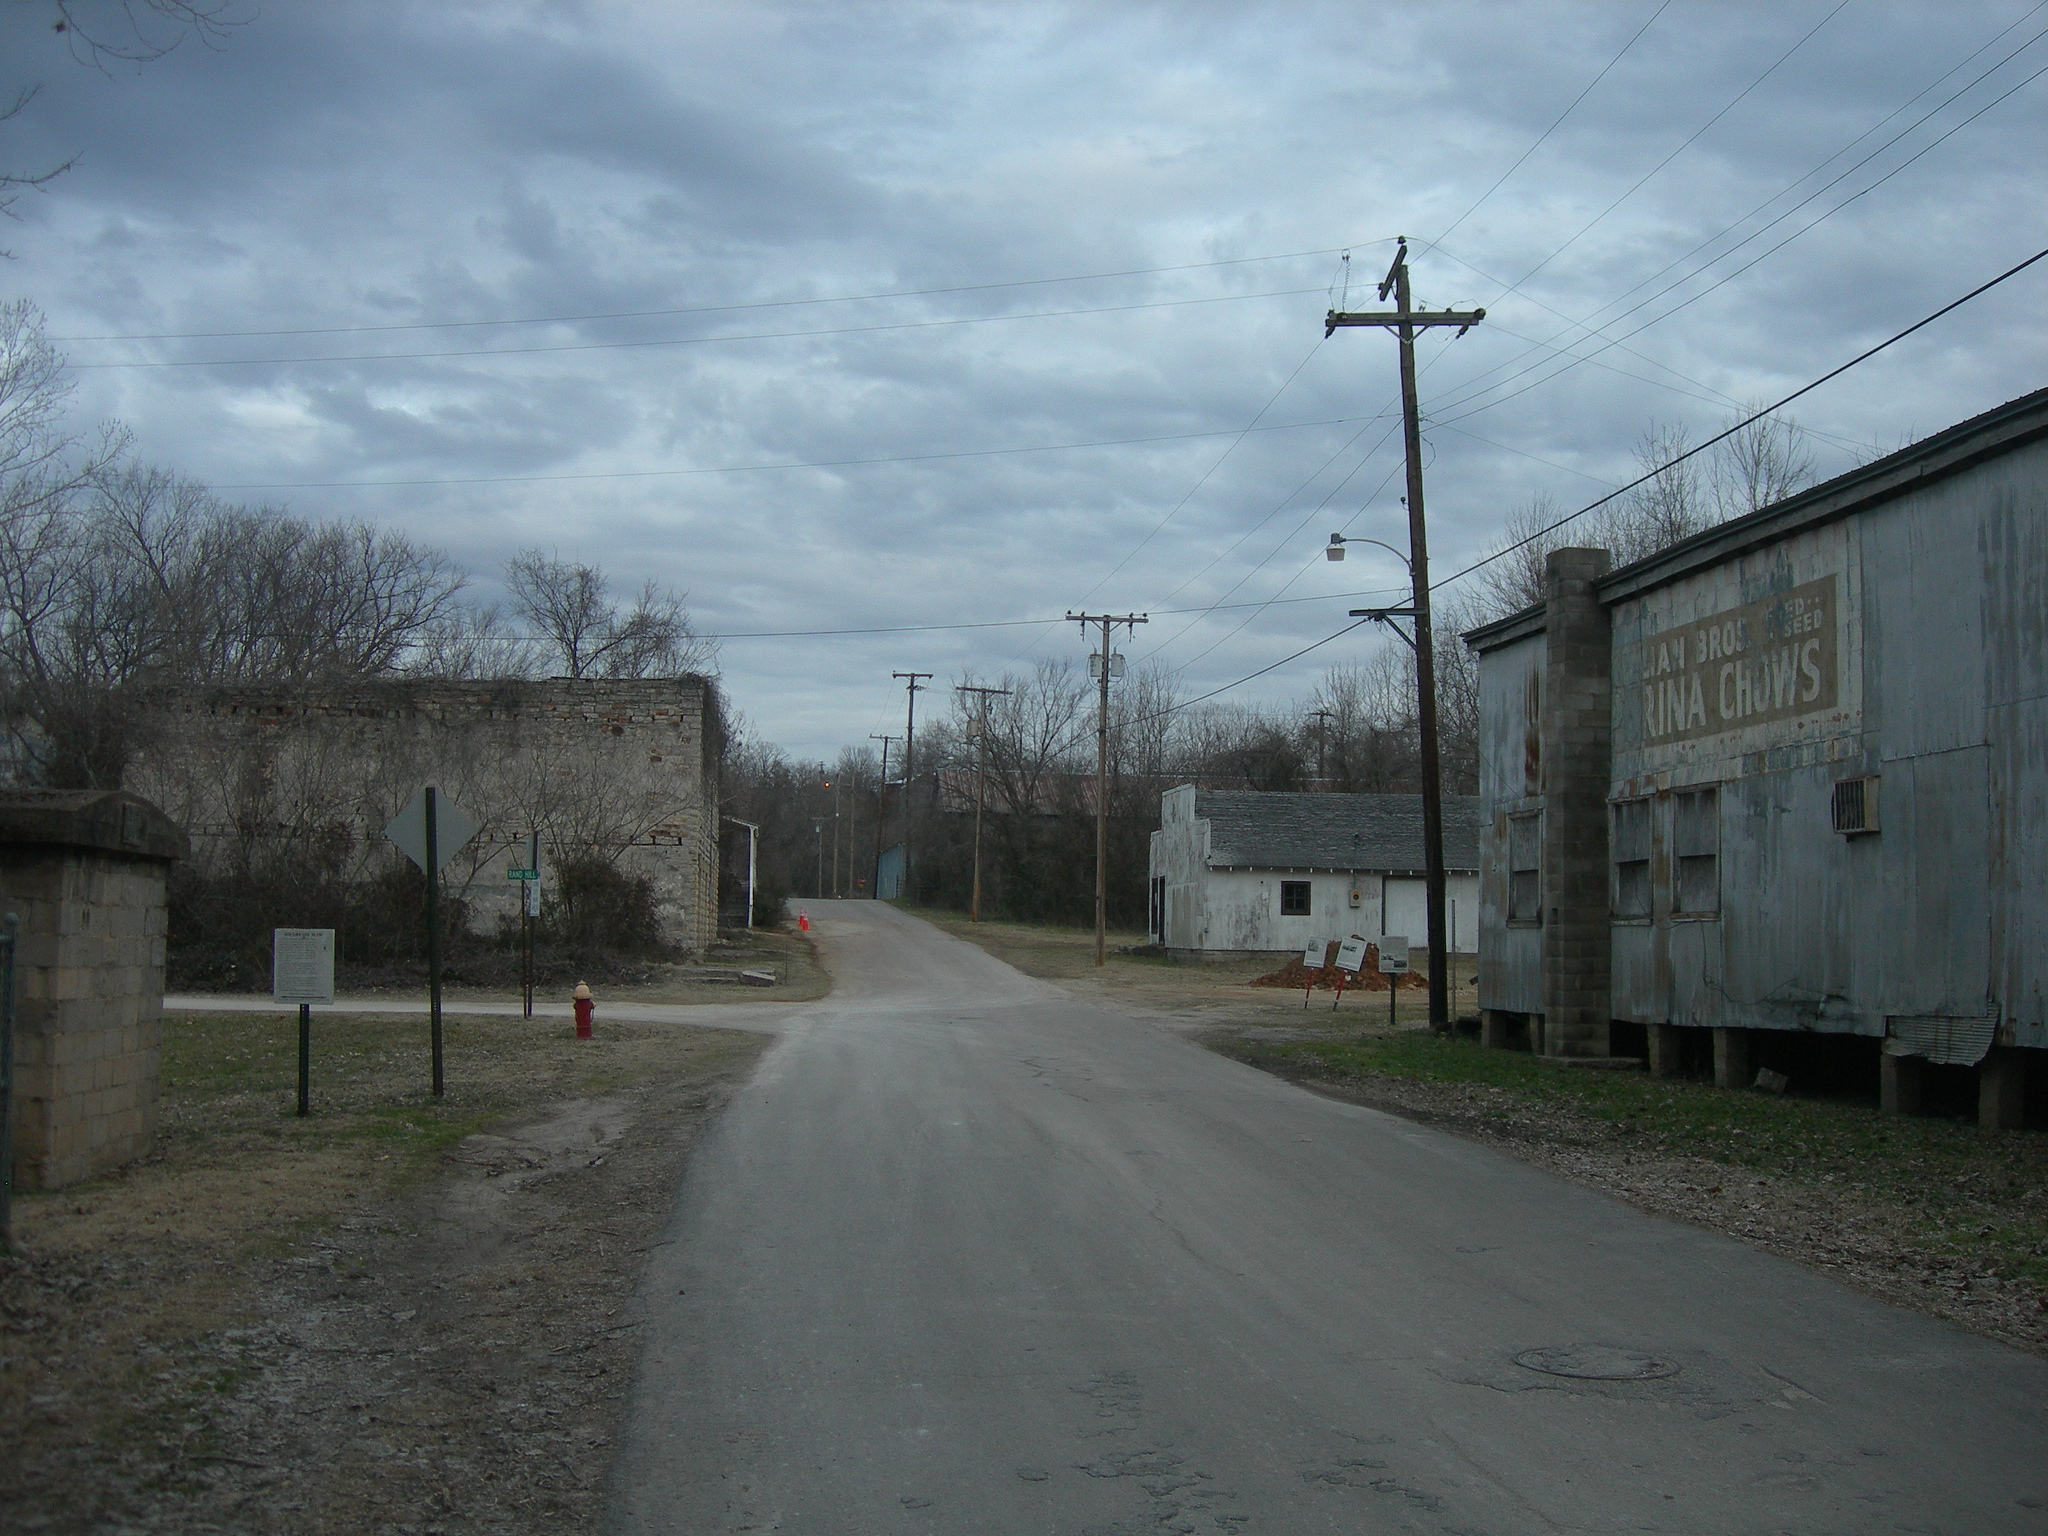 This Small Town In Arkansas Could Be Right Out Of A Horror